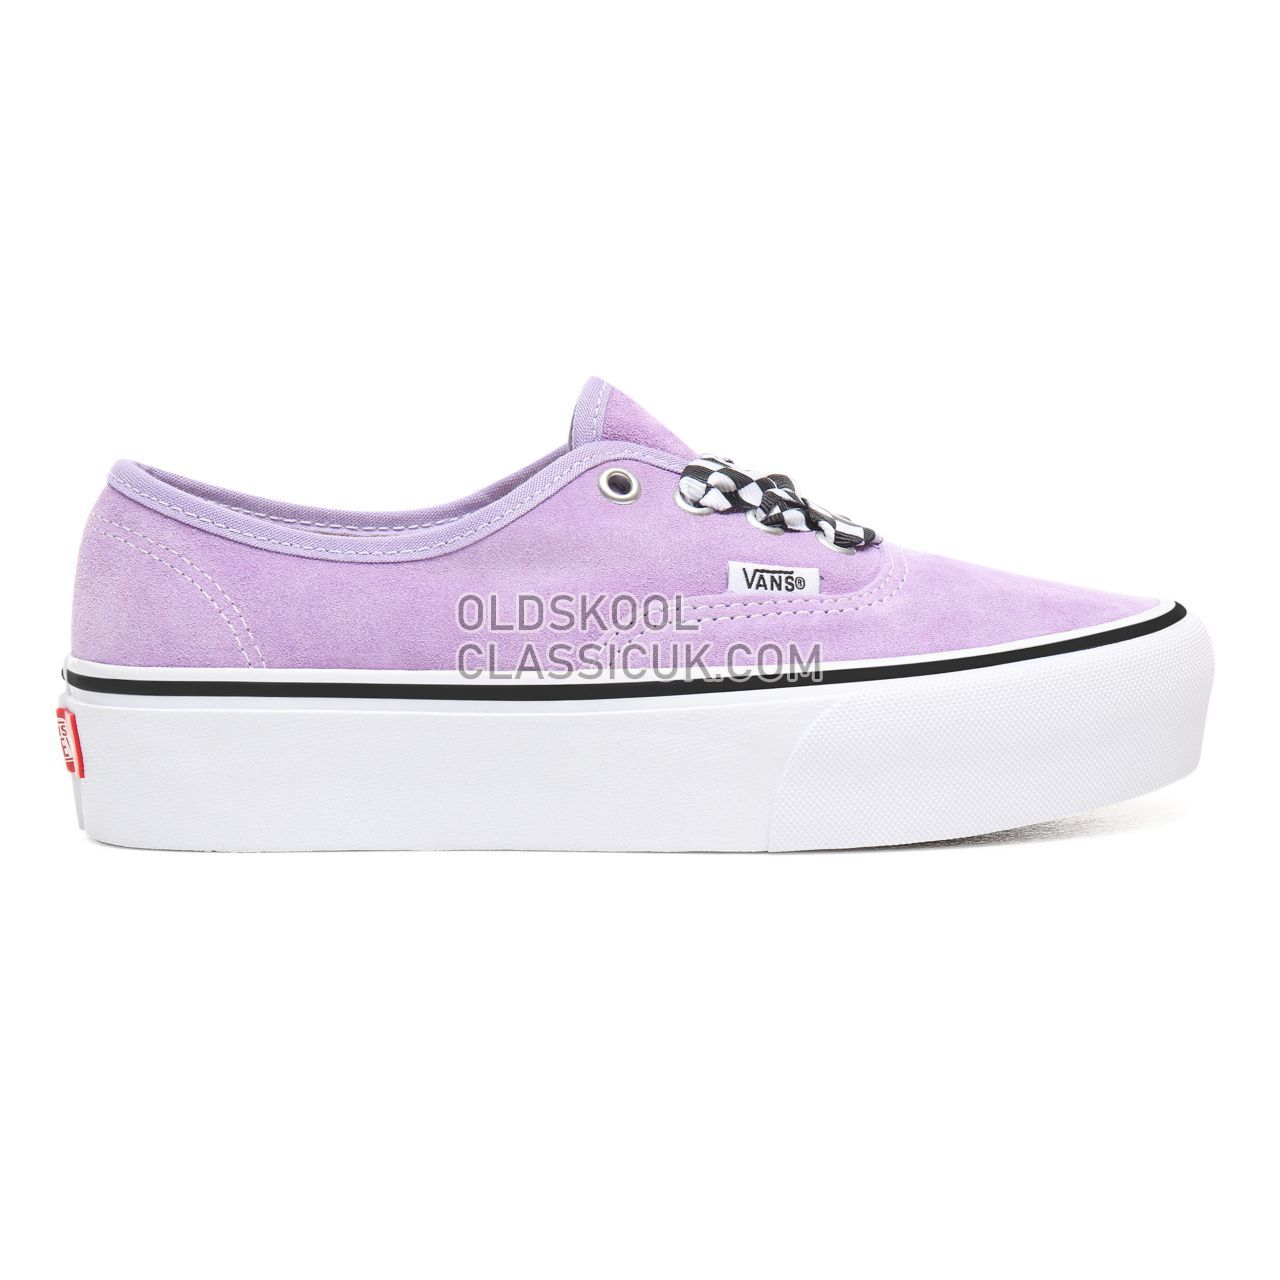 Vans Checkerboard Lace Authentic Platform 2.0 Sneakers Womens (Checkerboard Lace) Violet Tulip/True White VN0A3AV8S1V Shoes